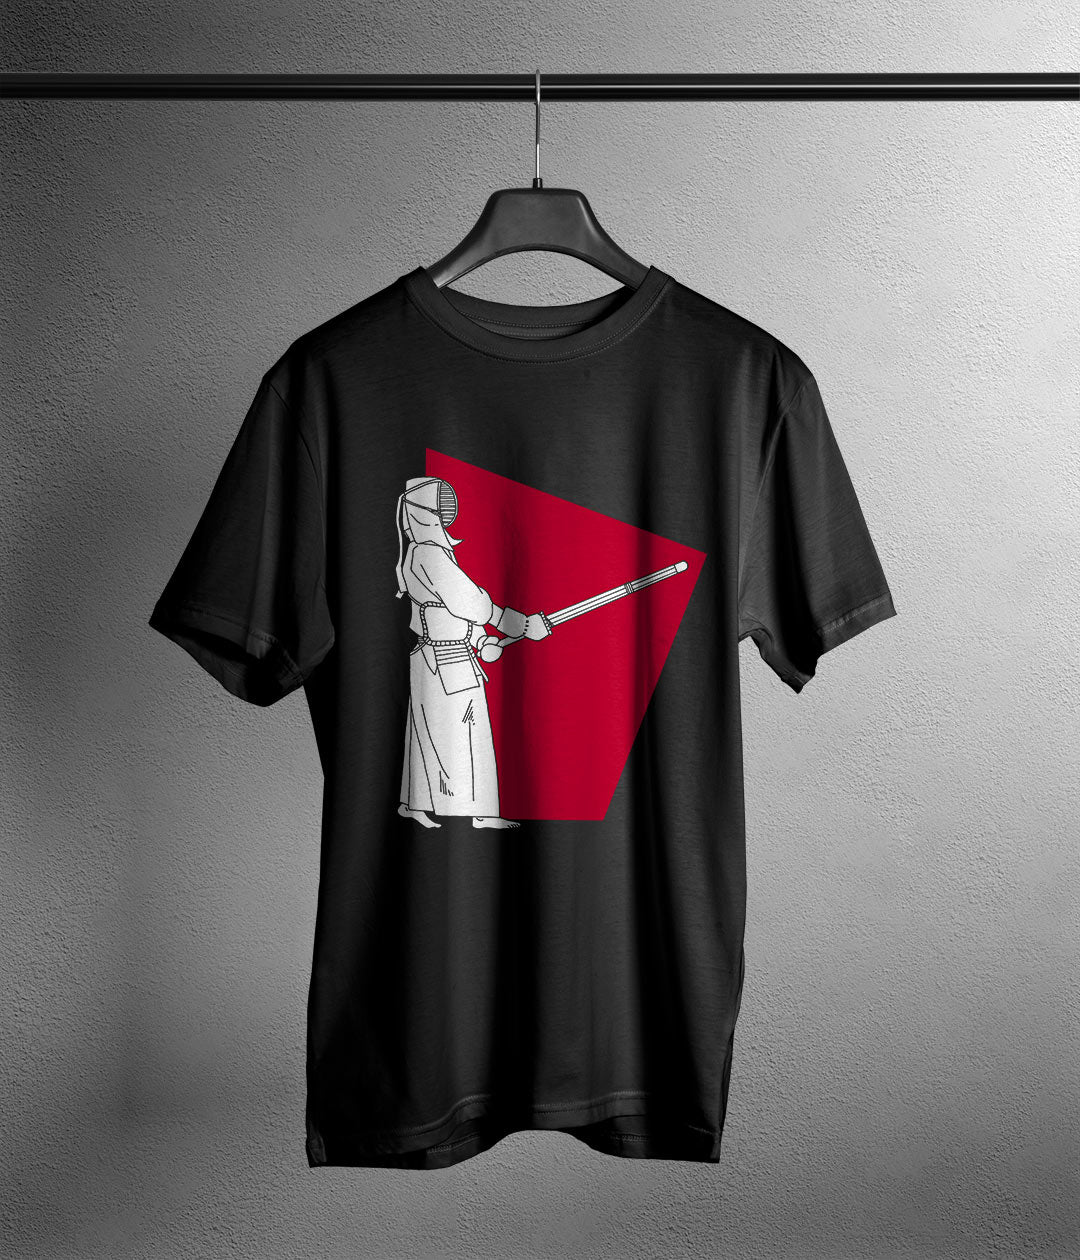 black t shirt with manga style kendo player printed in white and red